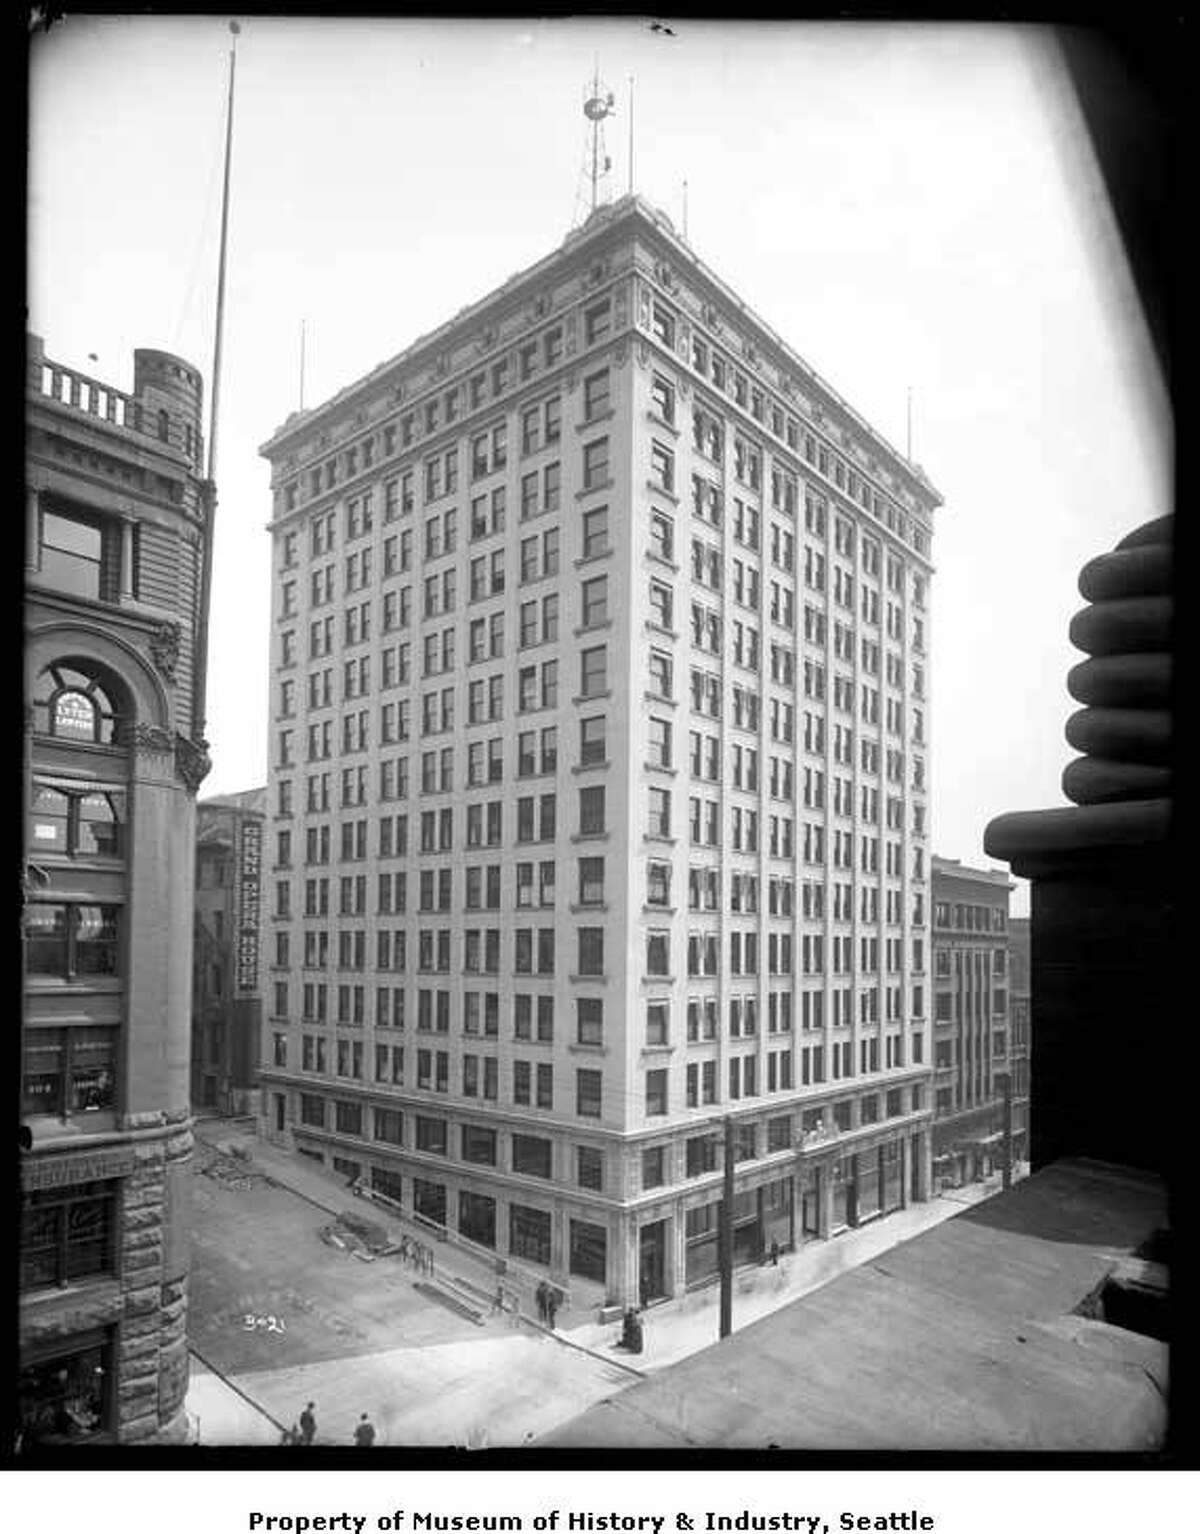 By 1904 the tallest structure was the Alaska Building (pictured here around 1907), at 203 feet tall. Photo by Webster and Stevens, courtesy MOHAI, PEMCO Webster & Stevens Collection, image number 1983.10.7317.1.